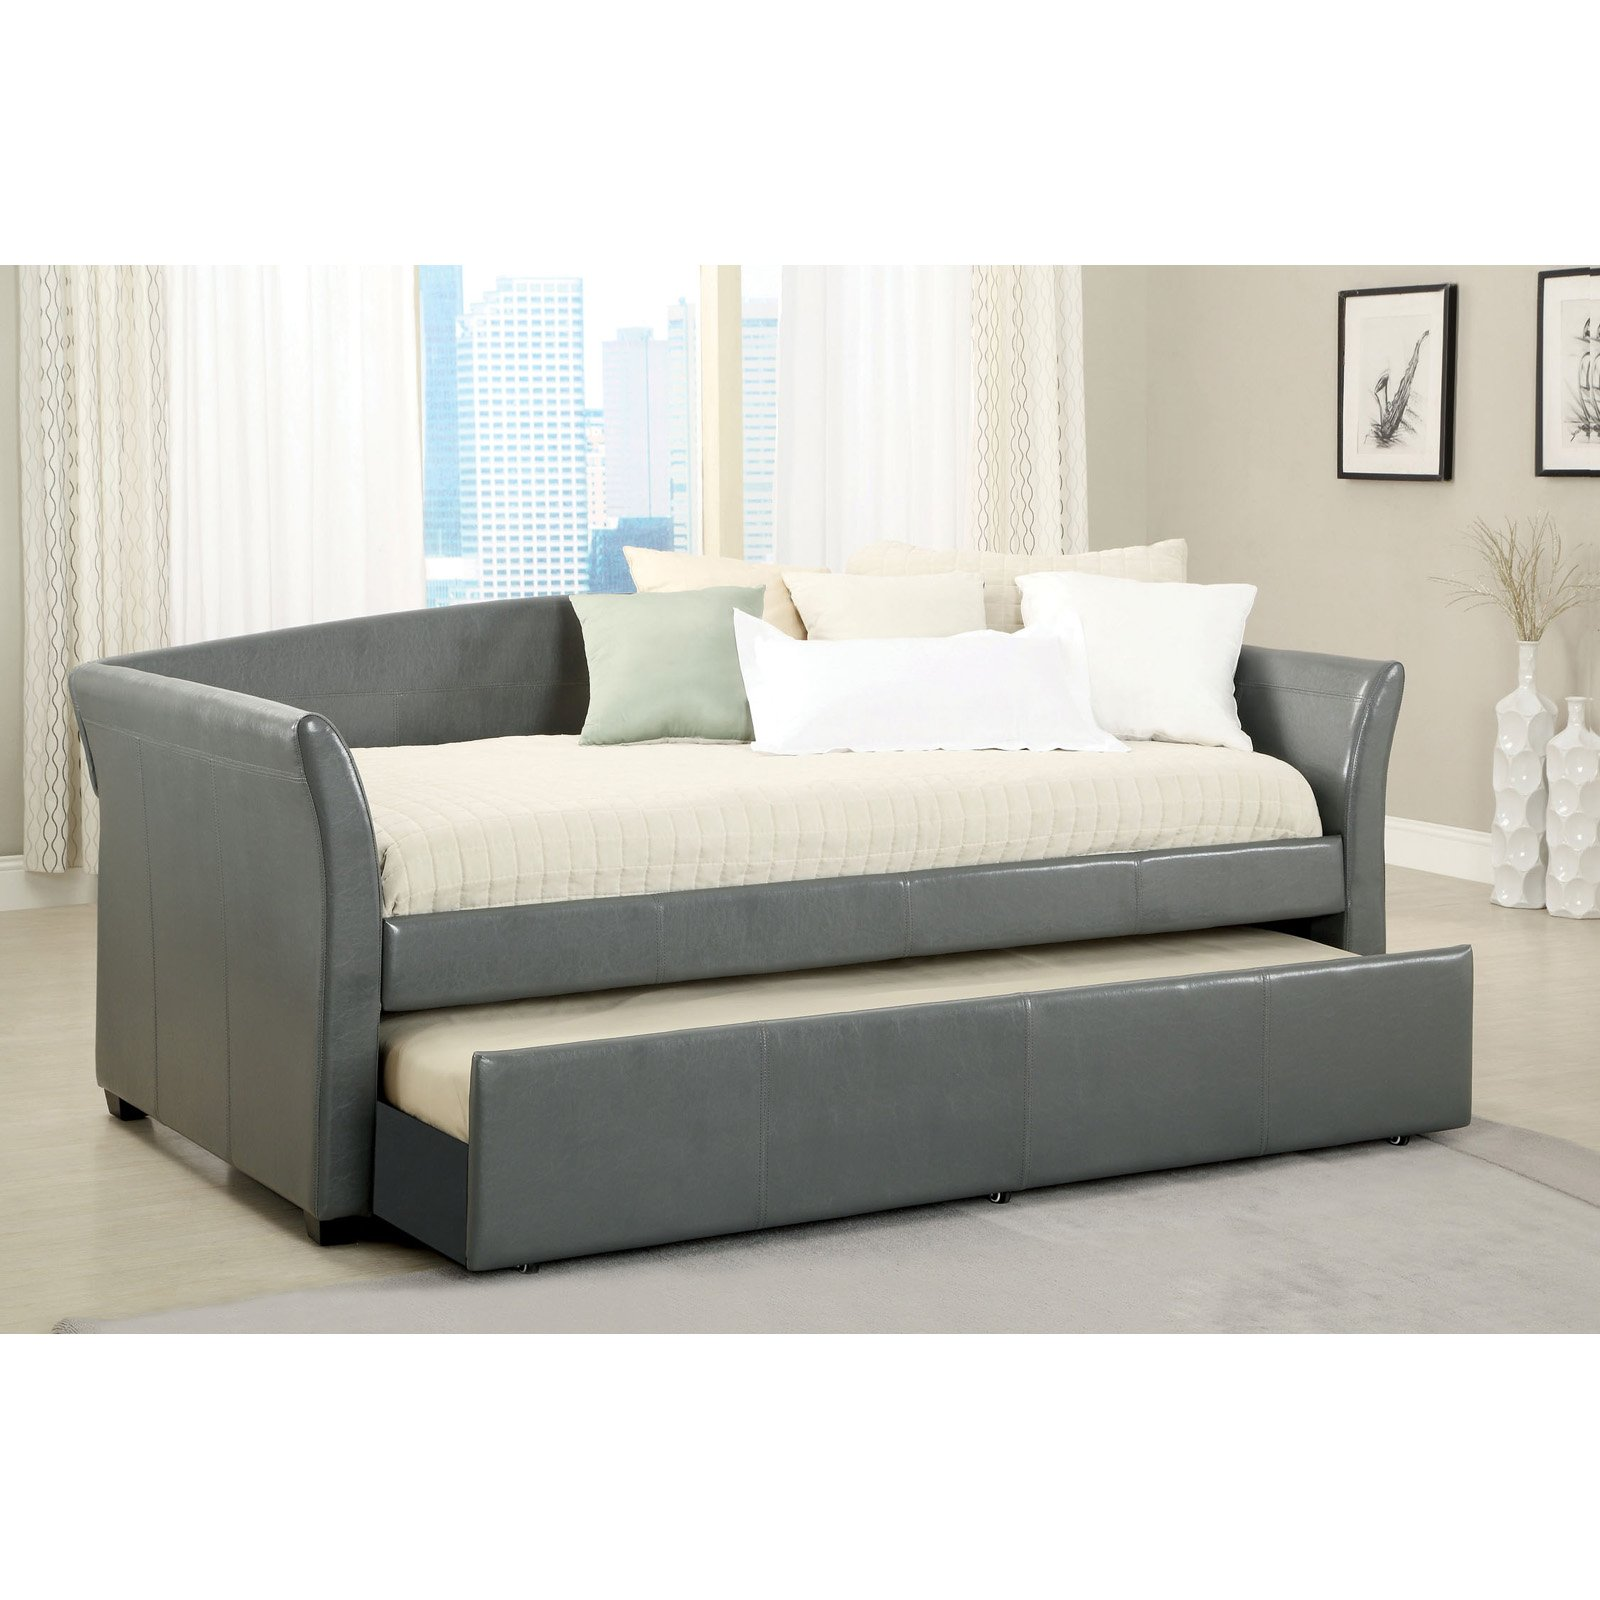 Daybed Trundle IKEA : A Multiple-Purpose Furniture | HomesFeed on ikea sofa bed, ikea platform bed, ikea hack bed, ikea hemnes daybed trundle, ikea loft bed with desk, ikea daybed with trundle white, ikea daybed with drawers, ikea day beds guest beds, ikea bed frames, ikea futons and daybeds, ikea loft beds for adults, ikea twin xl bed, ikea trundle bed,